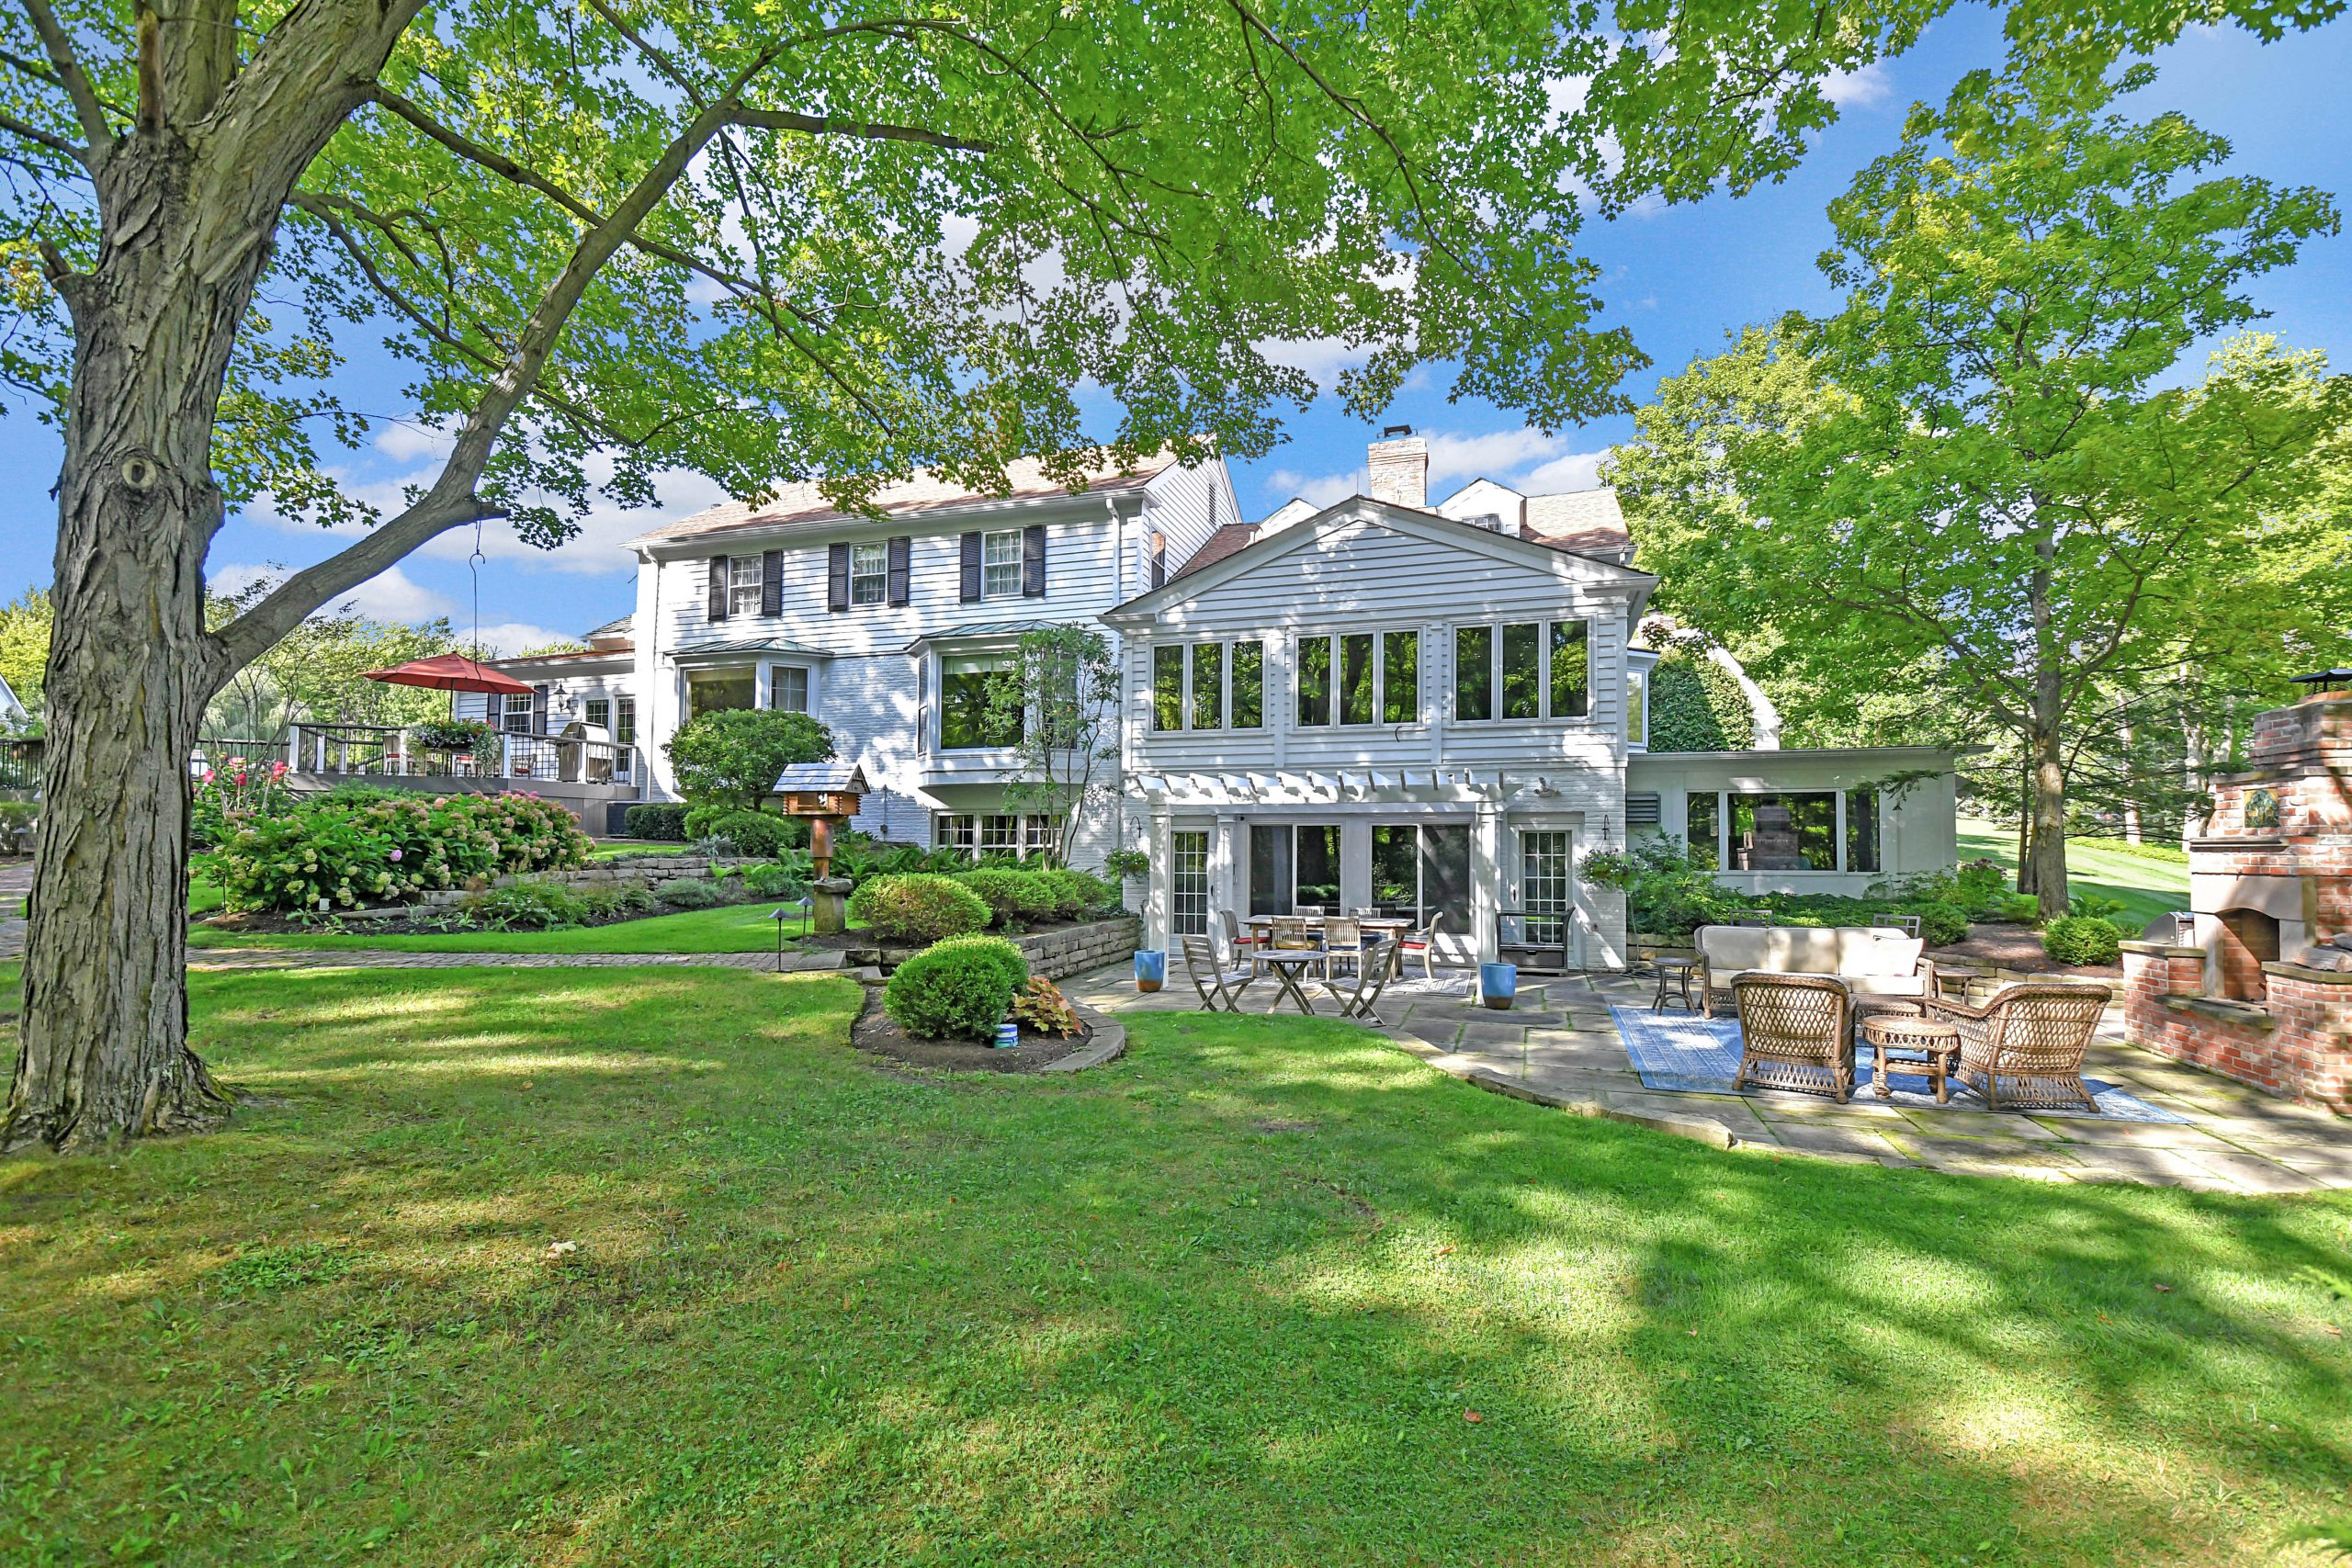 Charming colonial home set on 15 acres for sale on County Line Rd. in Gates Mills